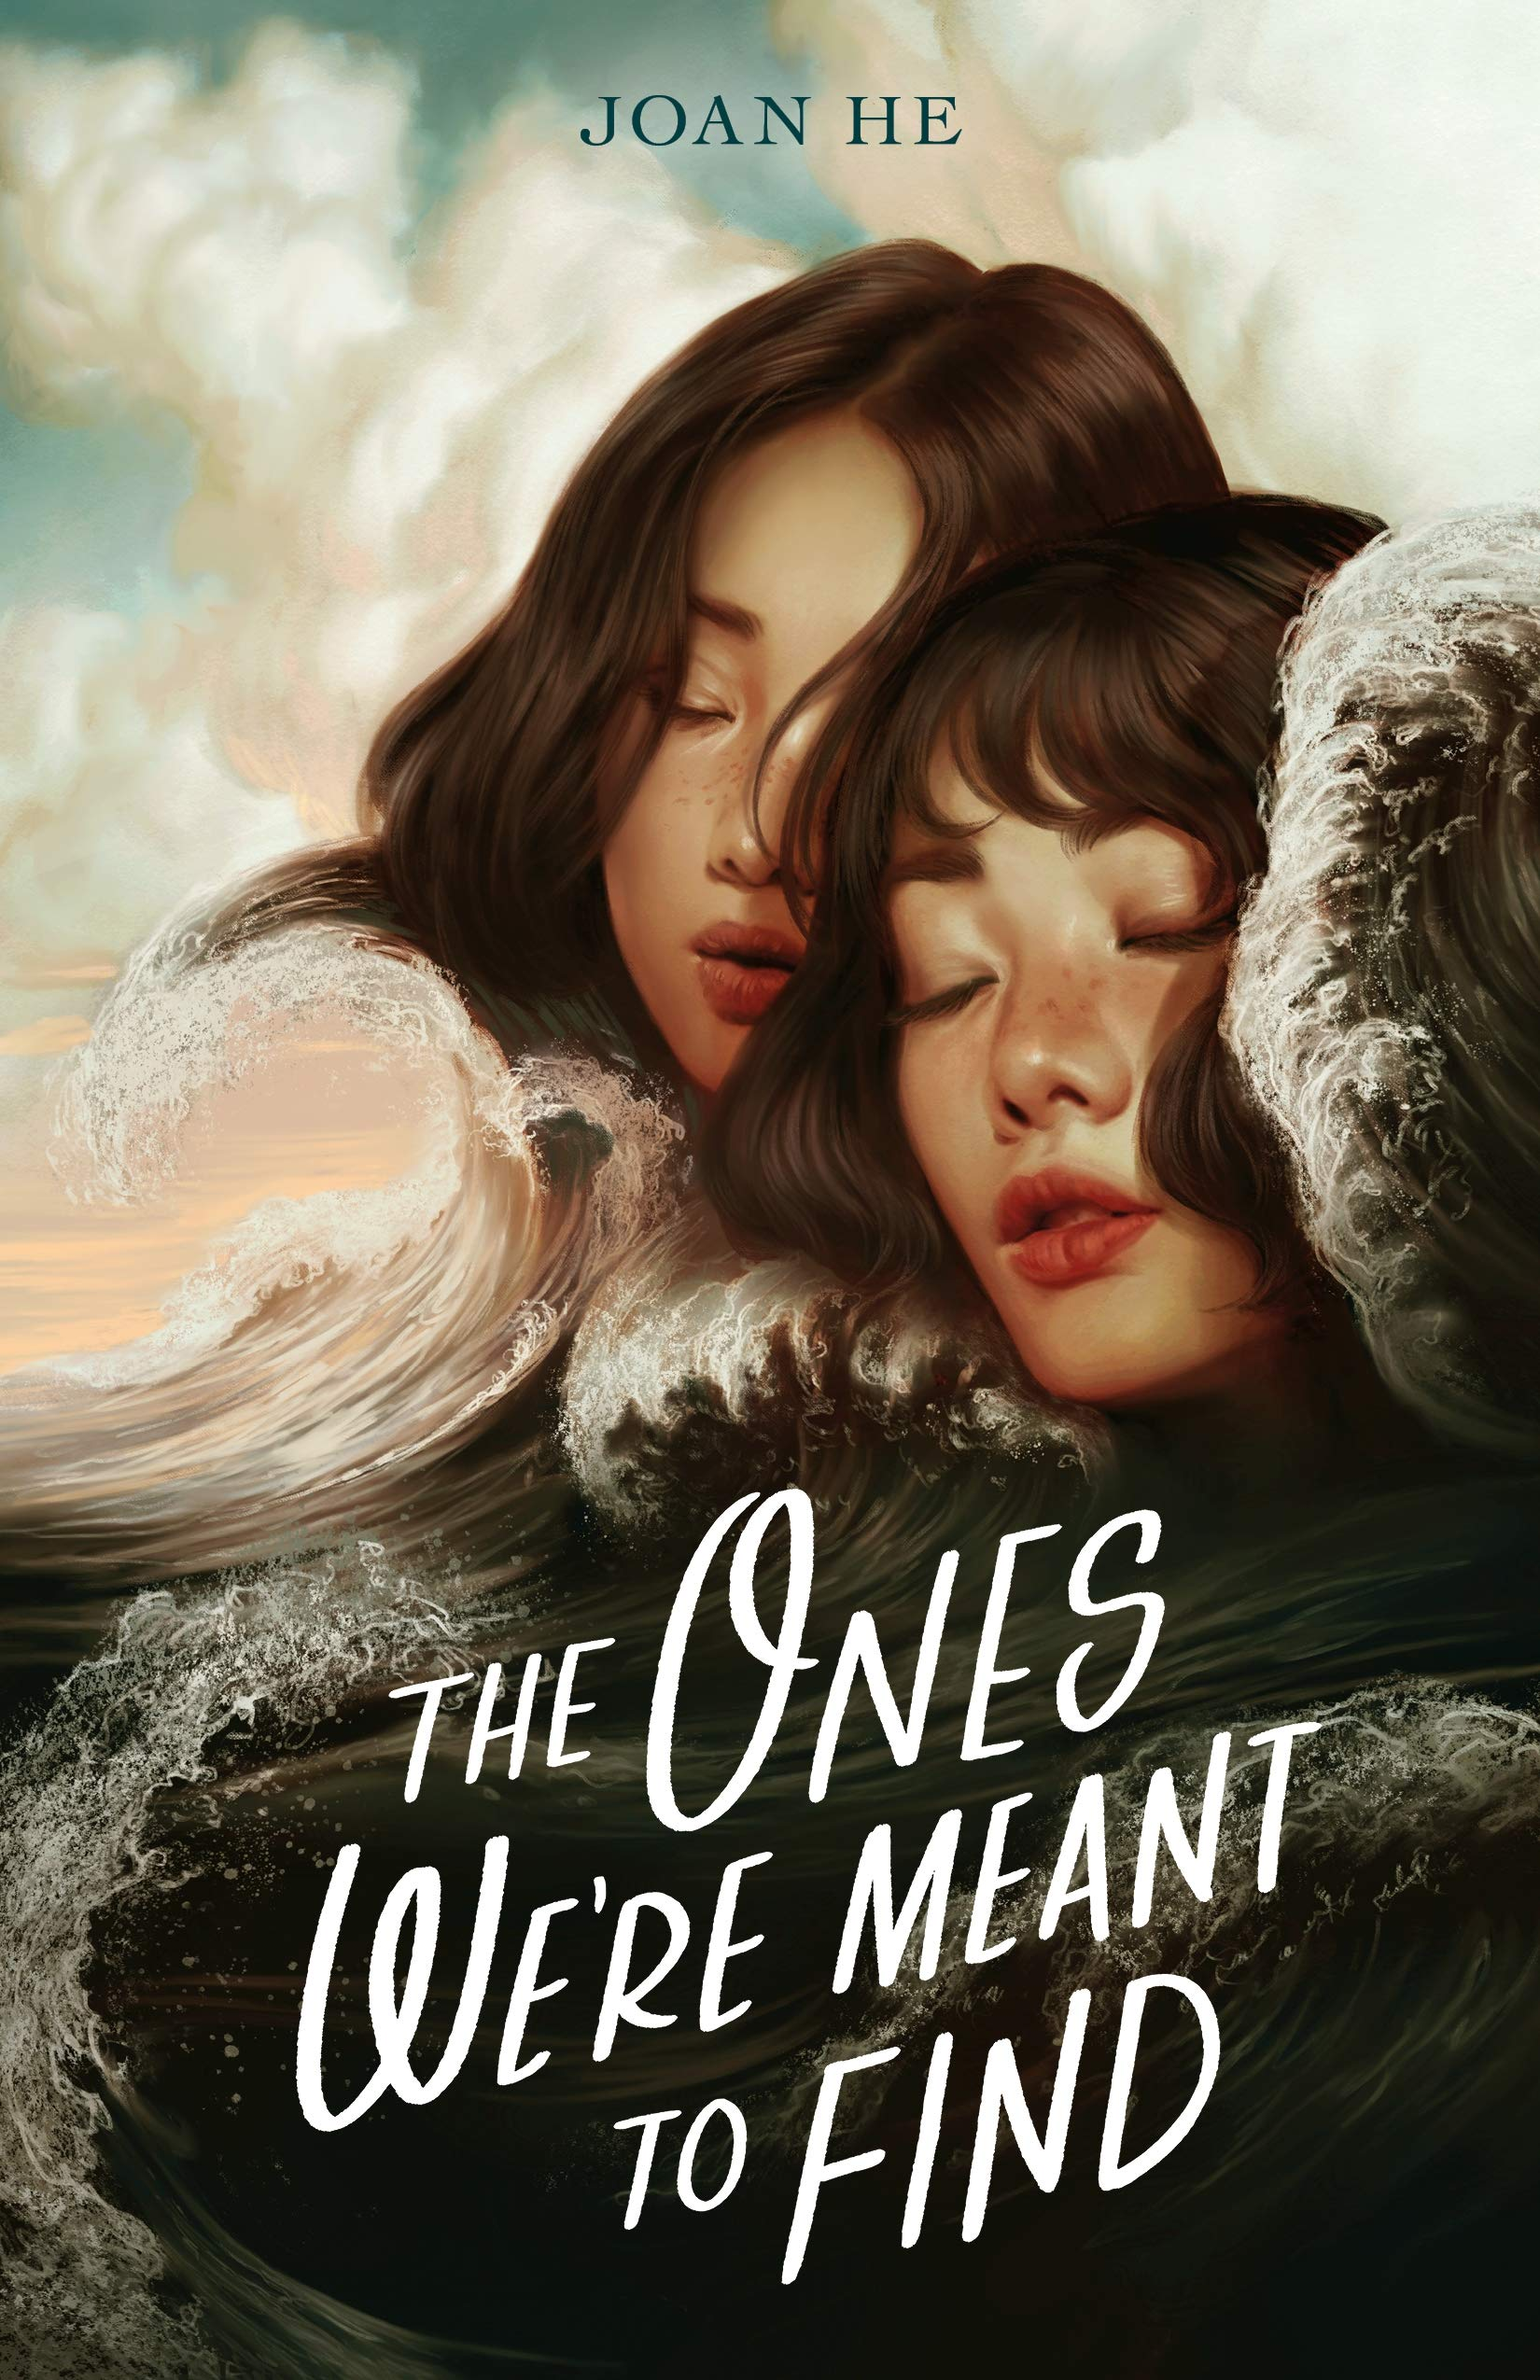 REVIEW: 'The Ones We're Meant to Find' by Joan He will take readers to a  futuristic world that hits close to home - Bookstacked